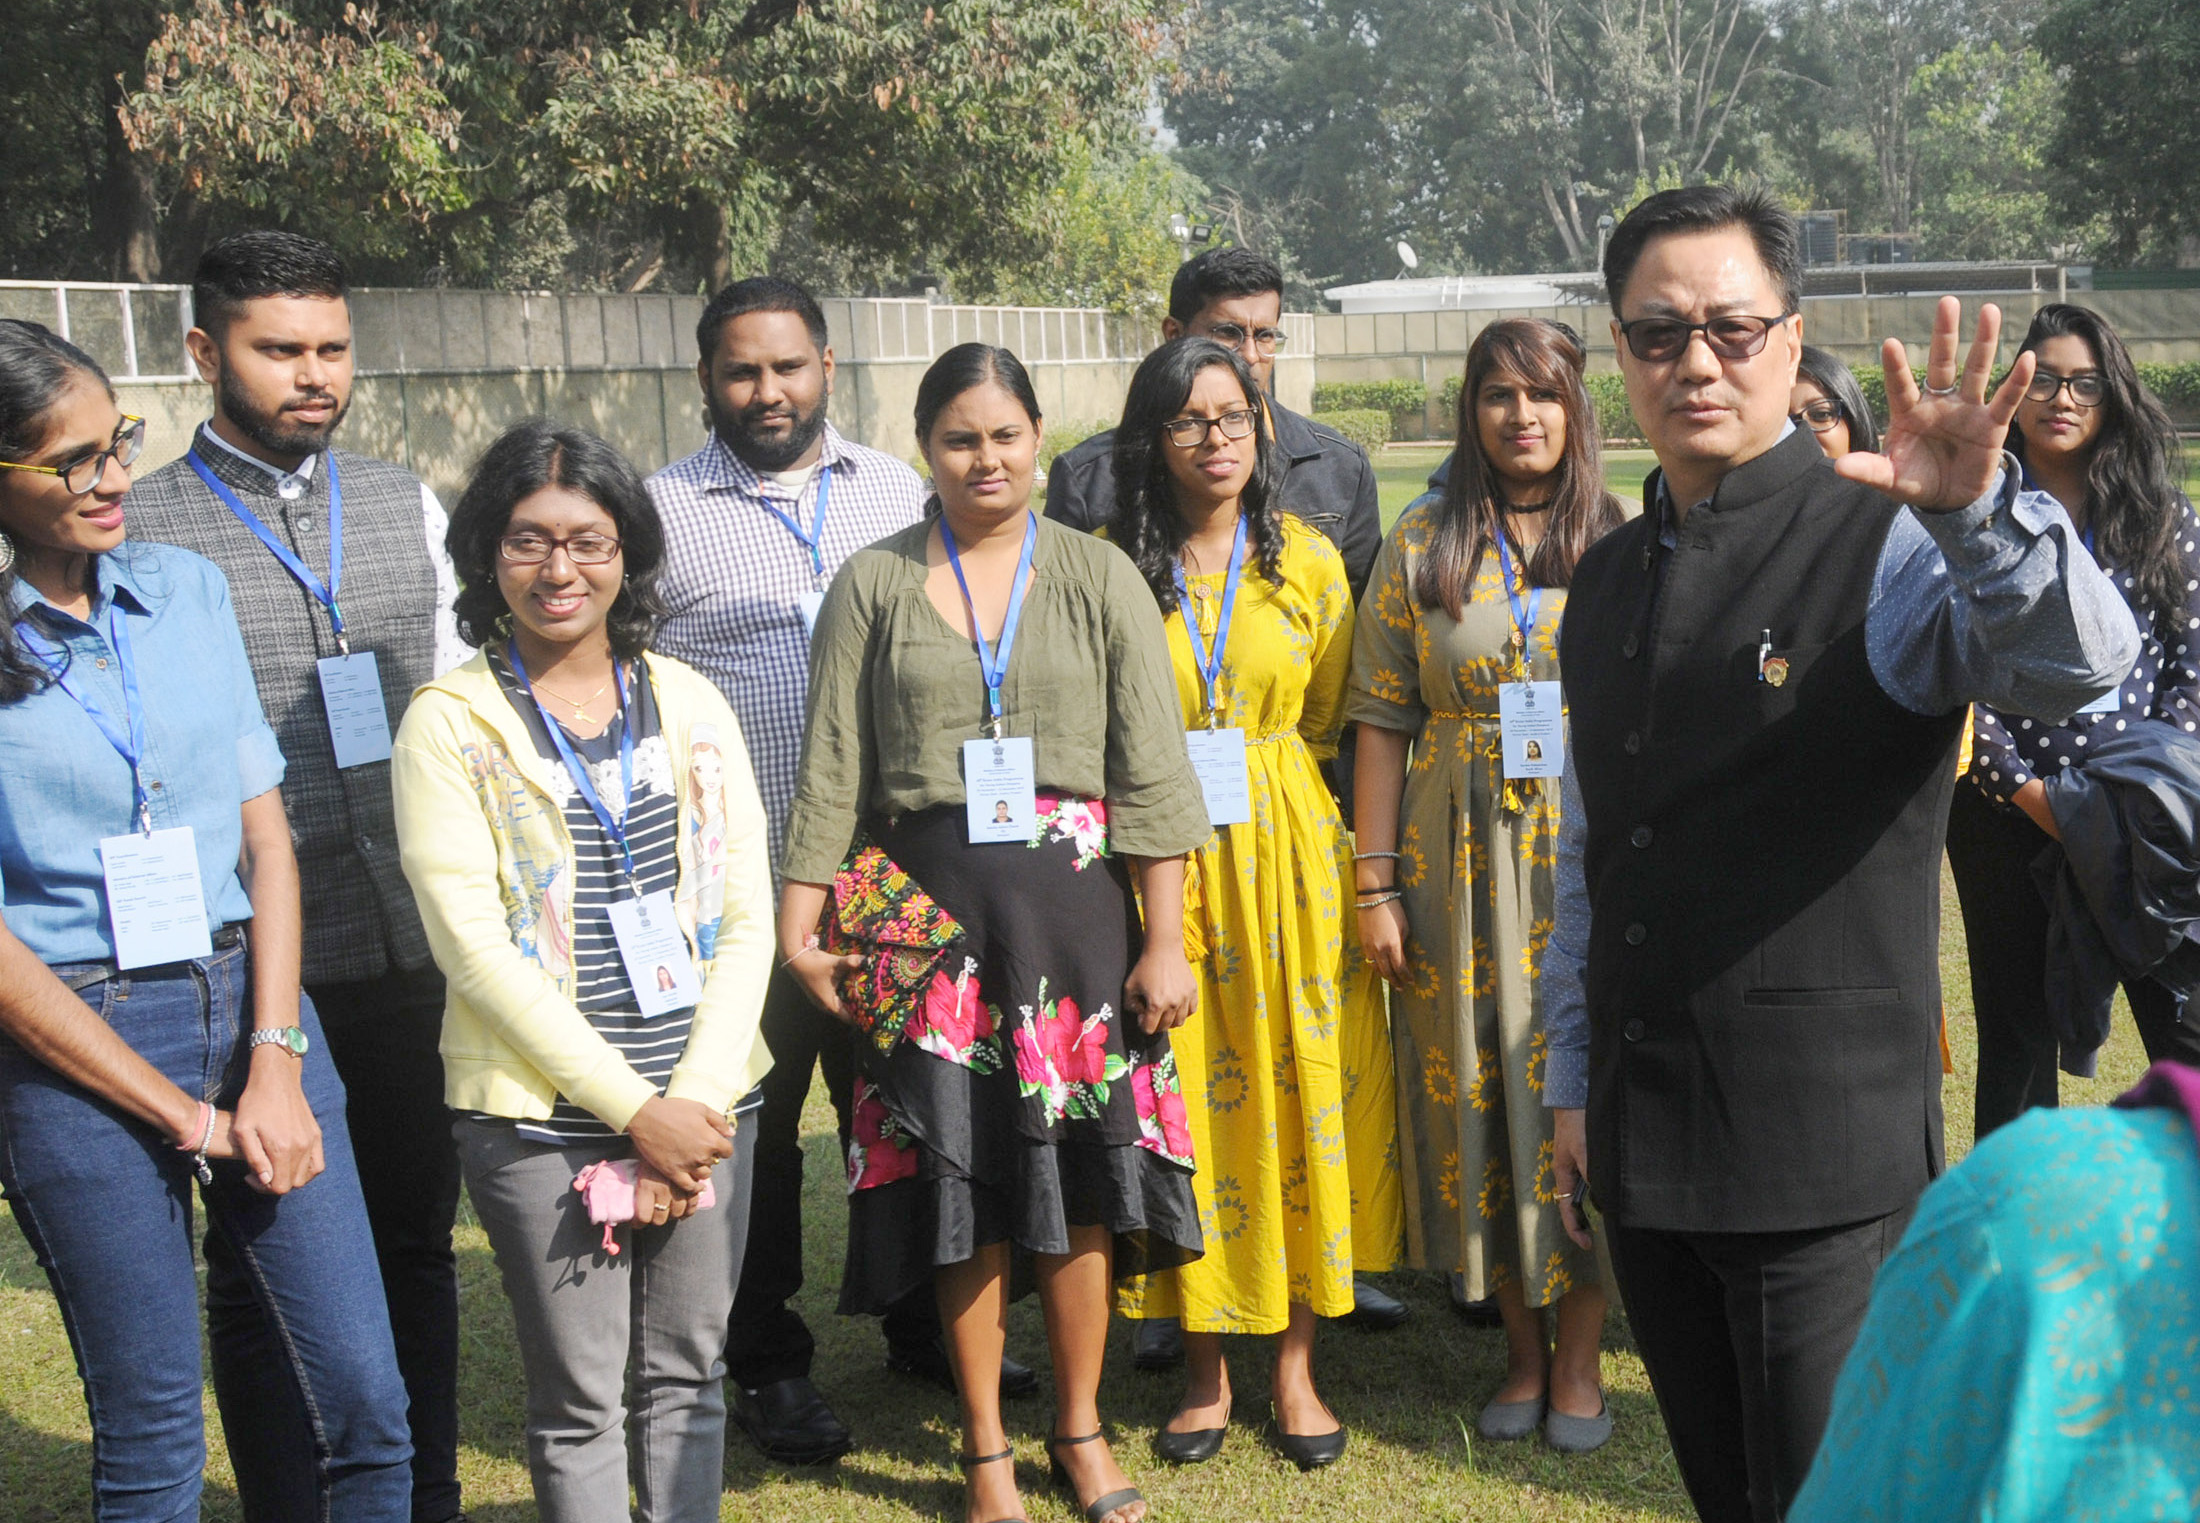 Minister of State for Home Affairs, Kiren Rijiju interacting with the participants of 'Know India Programme' (KIP) from eight countries, organised by MEA in partnership with Andhra Pradesh Government, in New Delhi on Saturday.